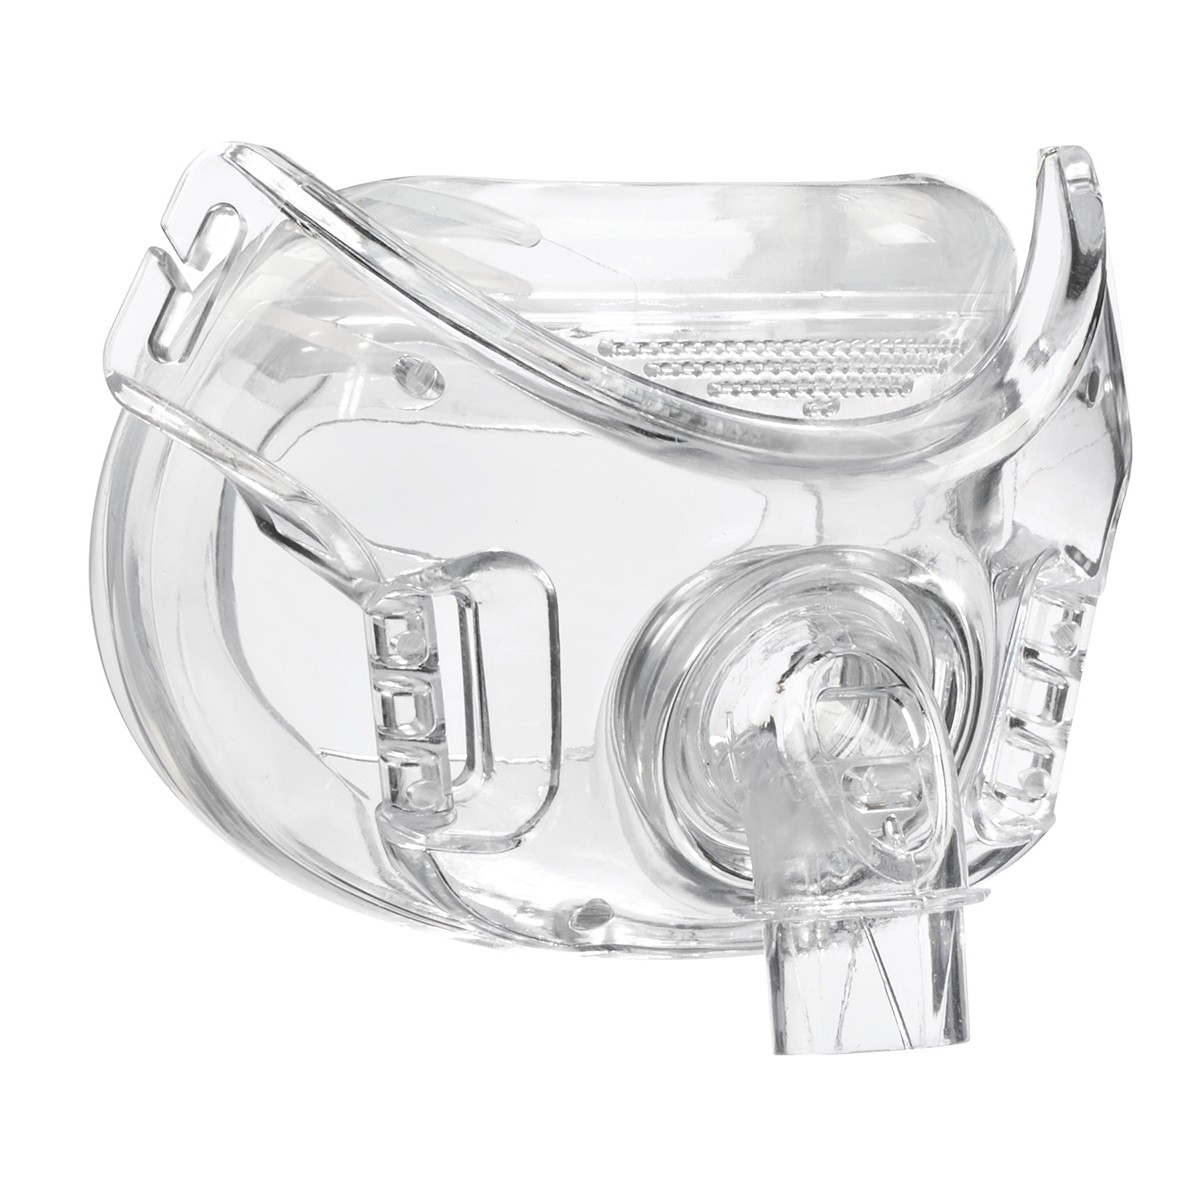 Amara View Full Face CPAP Mask with Headgear